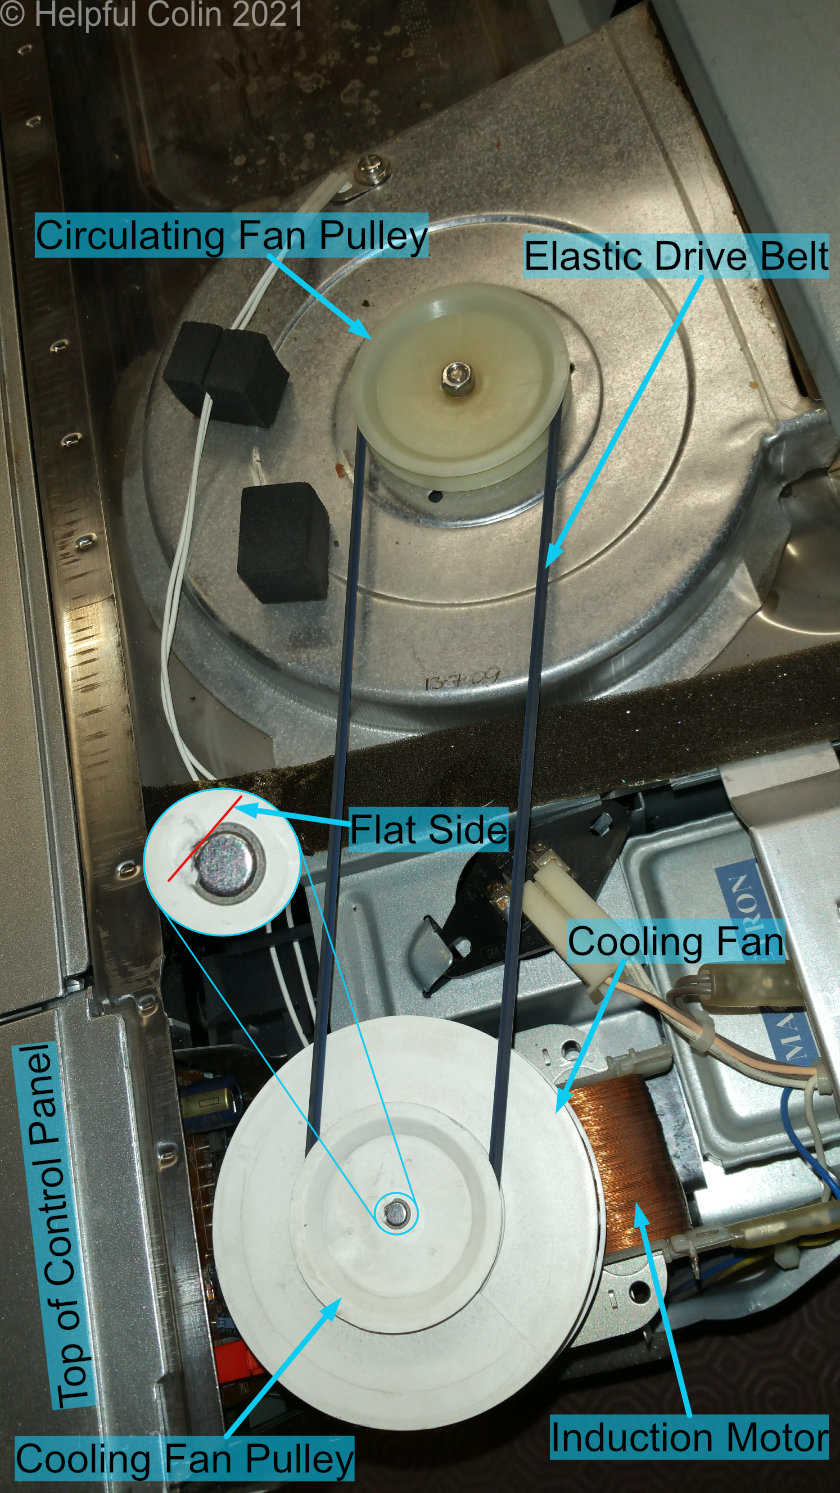 Cooling Fan and Circulating Fan Pulleys with Elastic Drive Belt